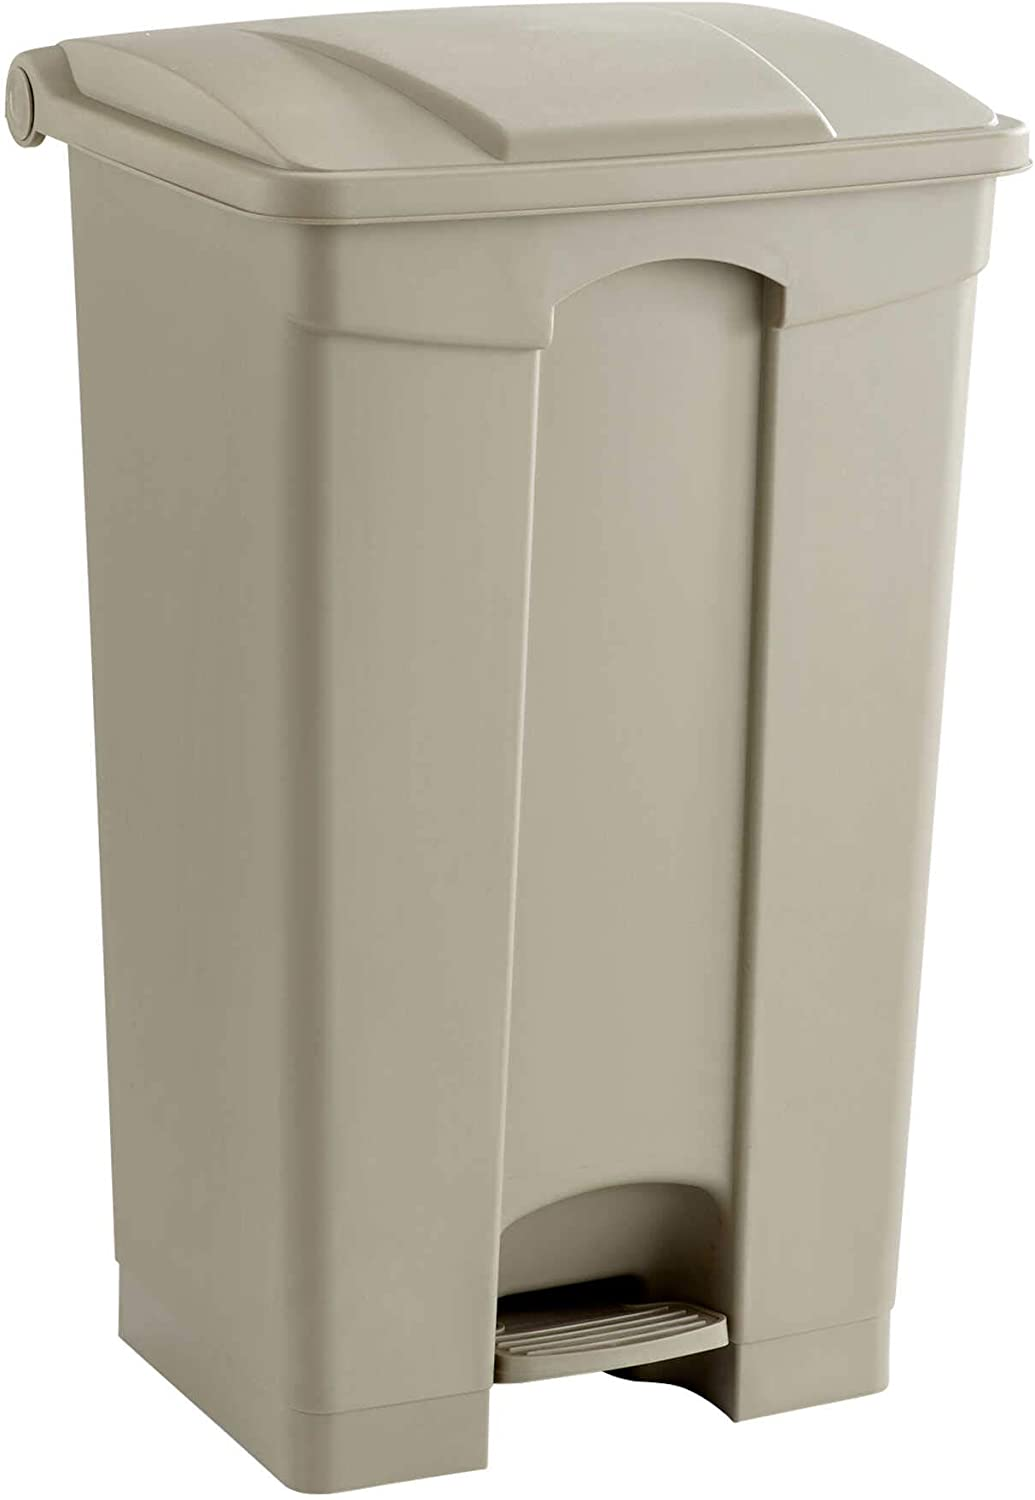 Safco Products Plastic Step-On Trash Can 9923TN, Tan, Hands-free Disposal, 23-Gallon Capacity